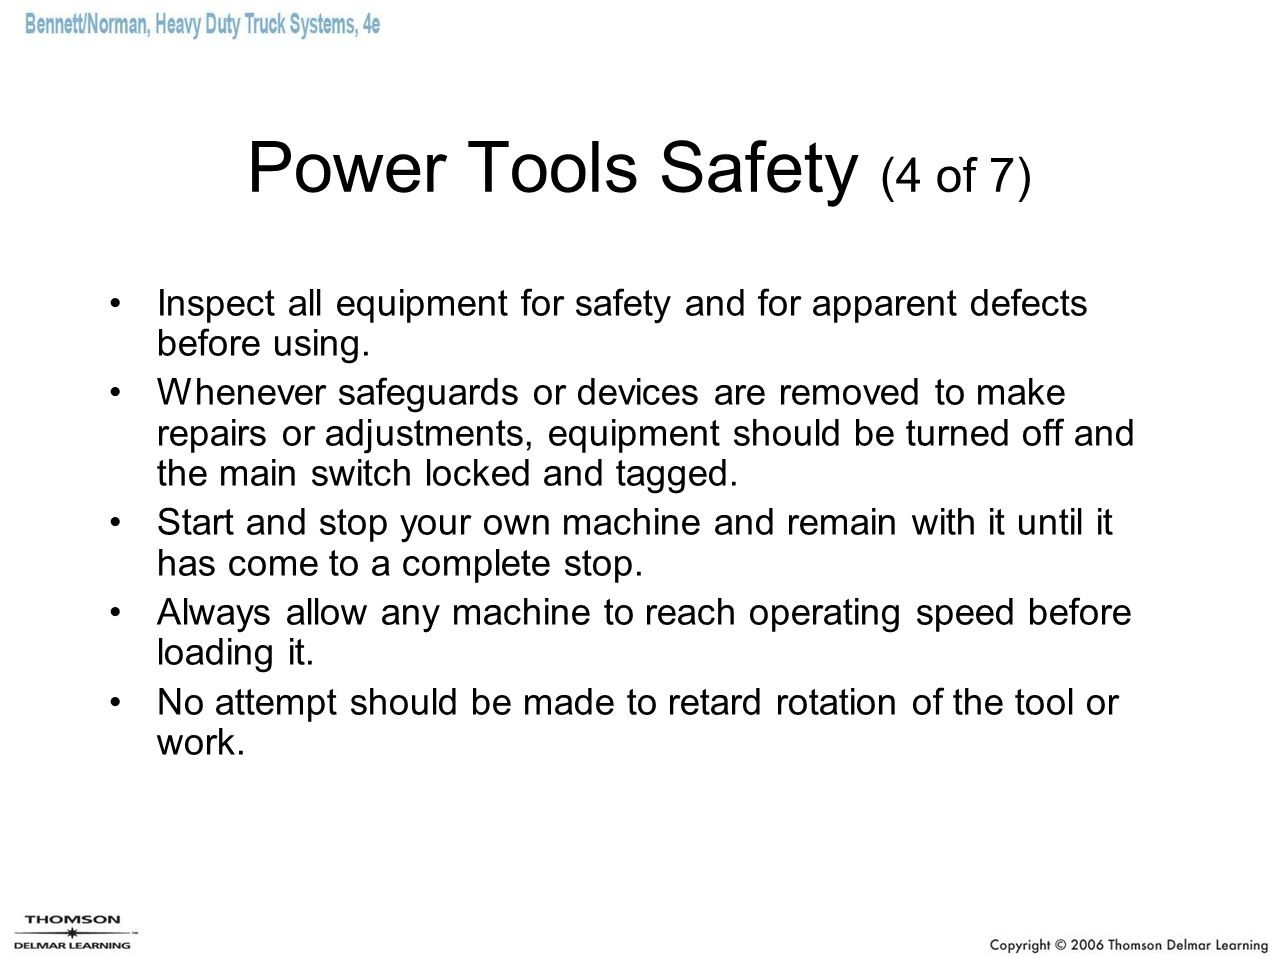 Power Tools Safety (4 of 7)